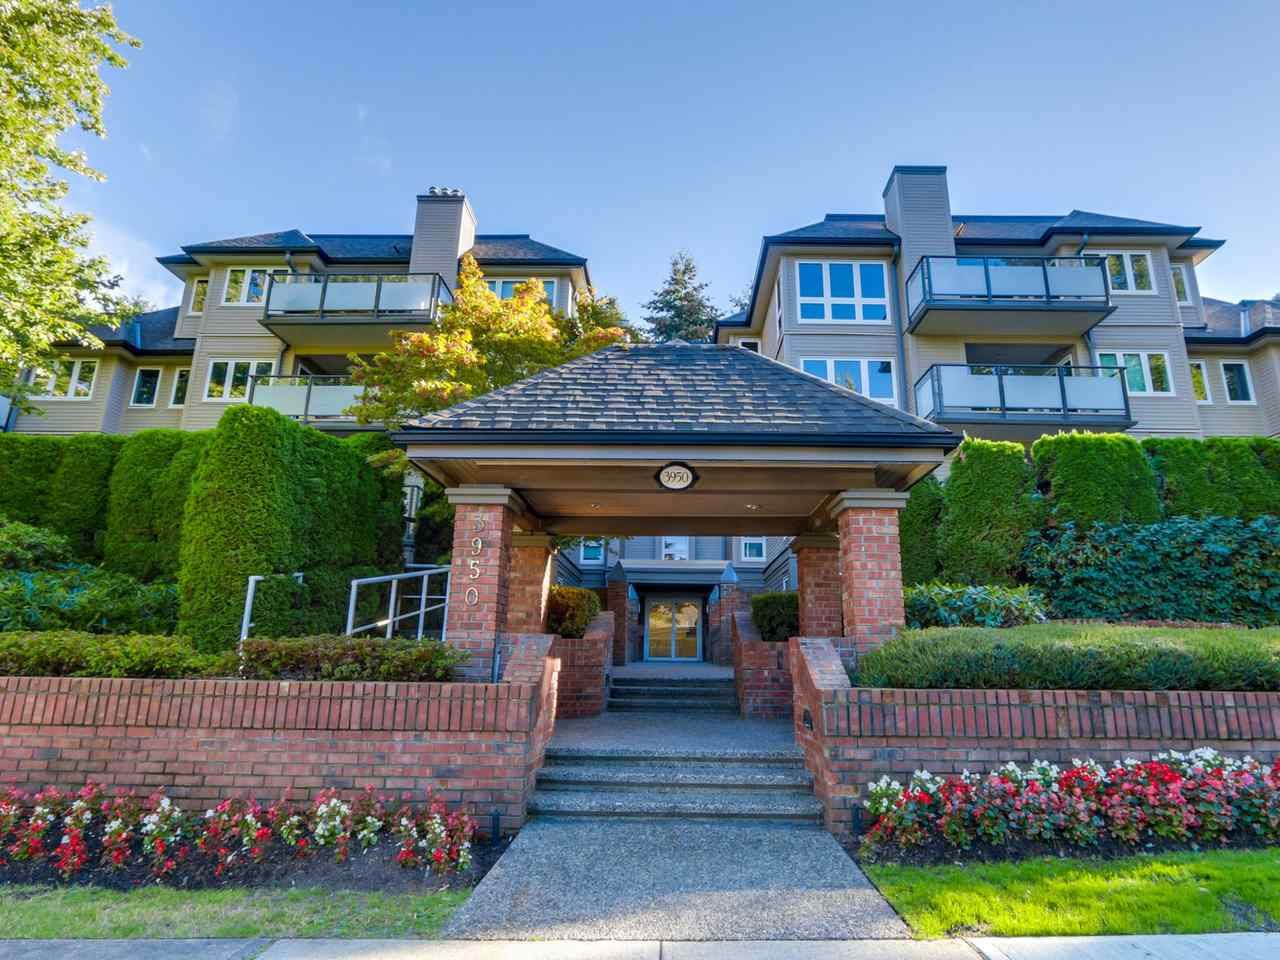 """Main Photo: 101 3950 LINWOOD Street in Burnaby: Burnaby Hospital Condo for sale in """"CASCADE VILLAGE"""" (Burnaby South)  : MLS®# R2109550"""